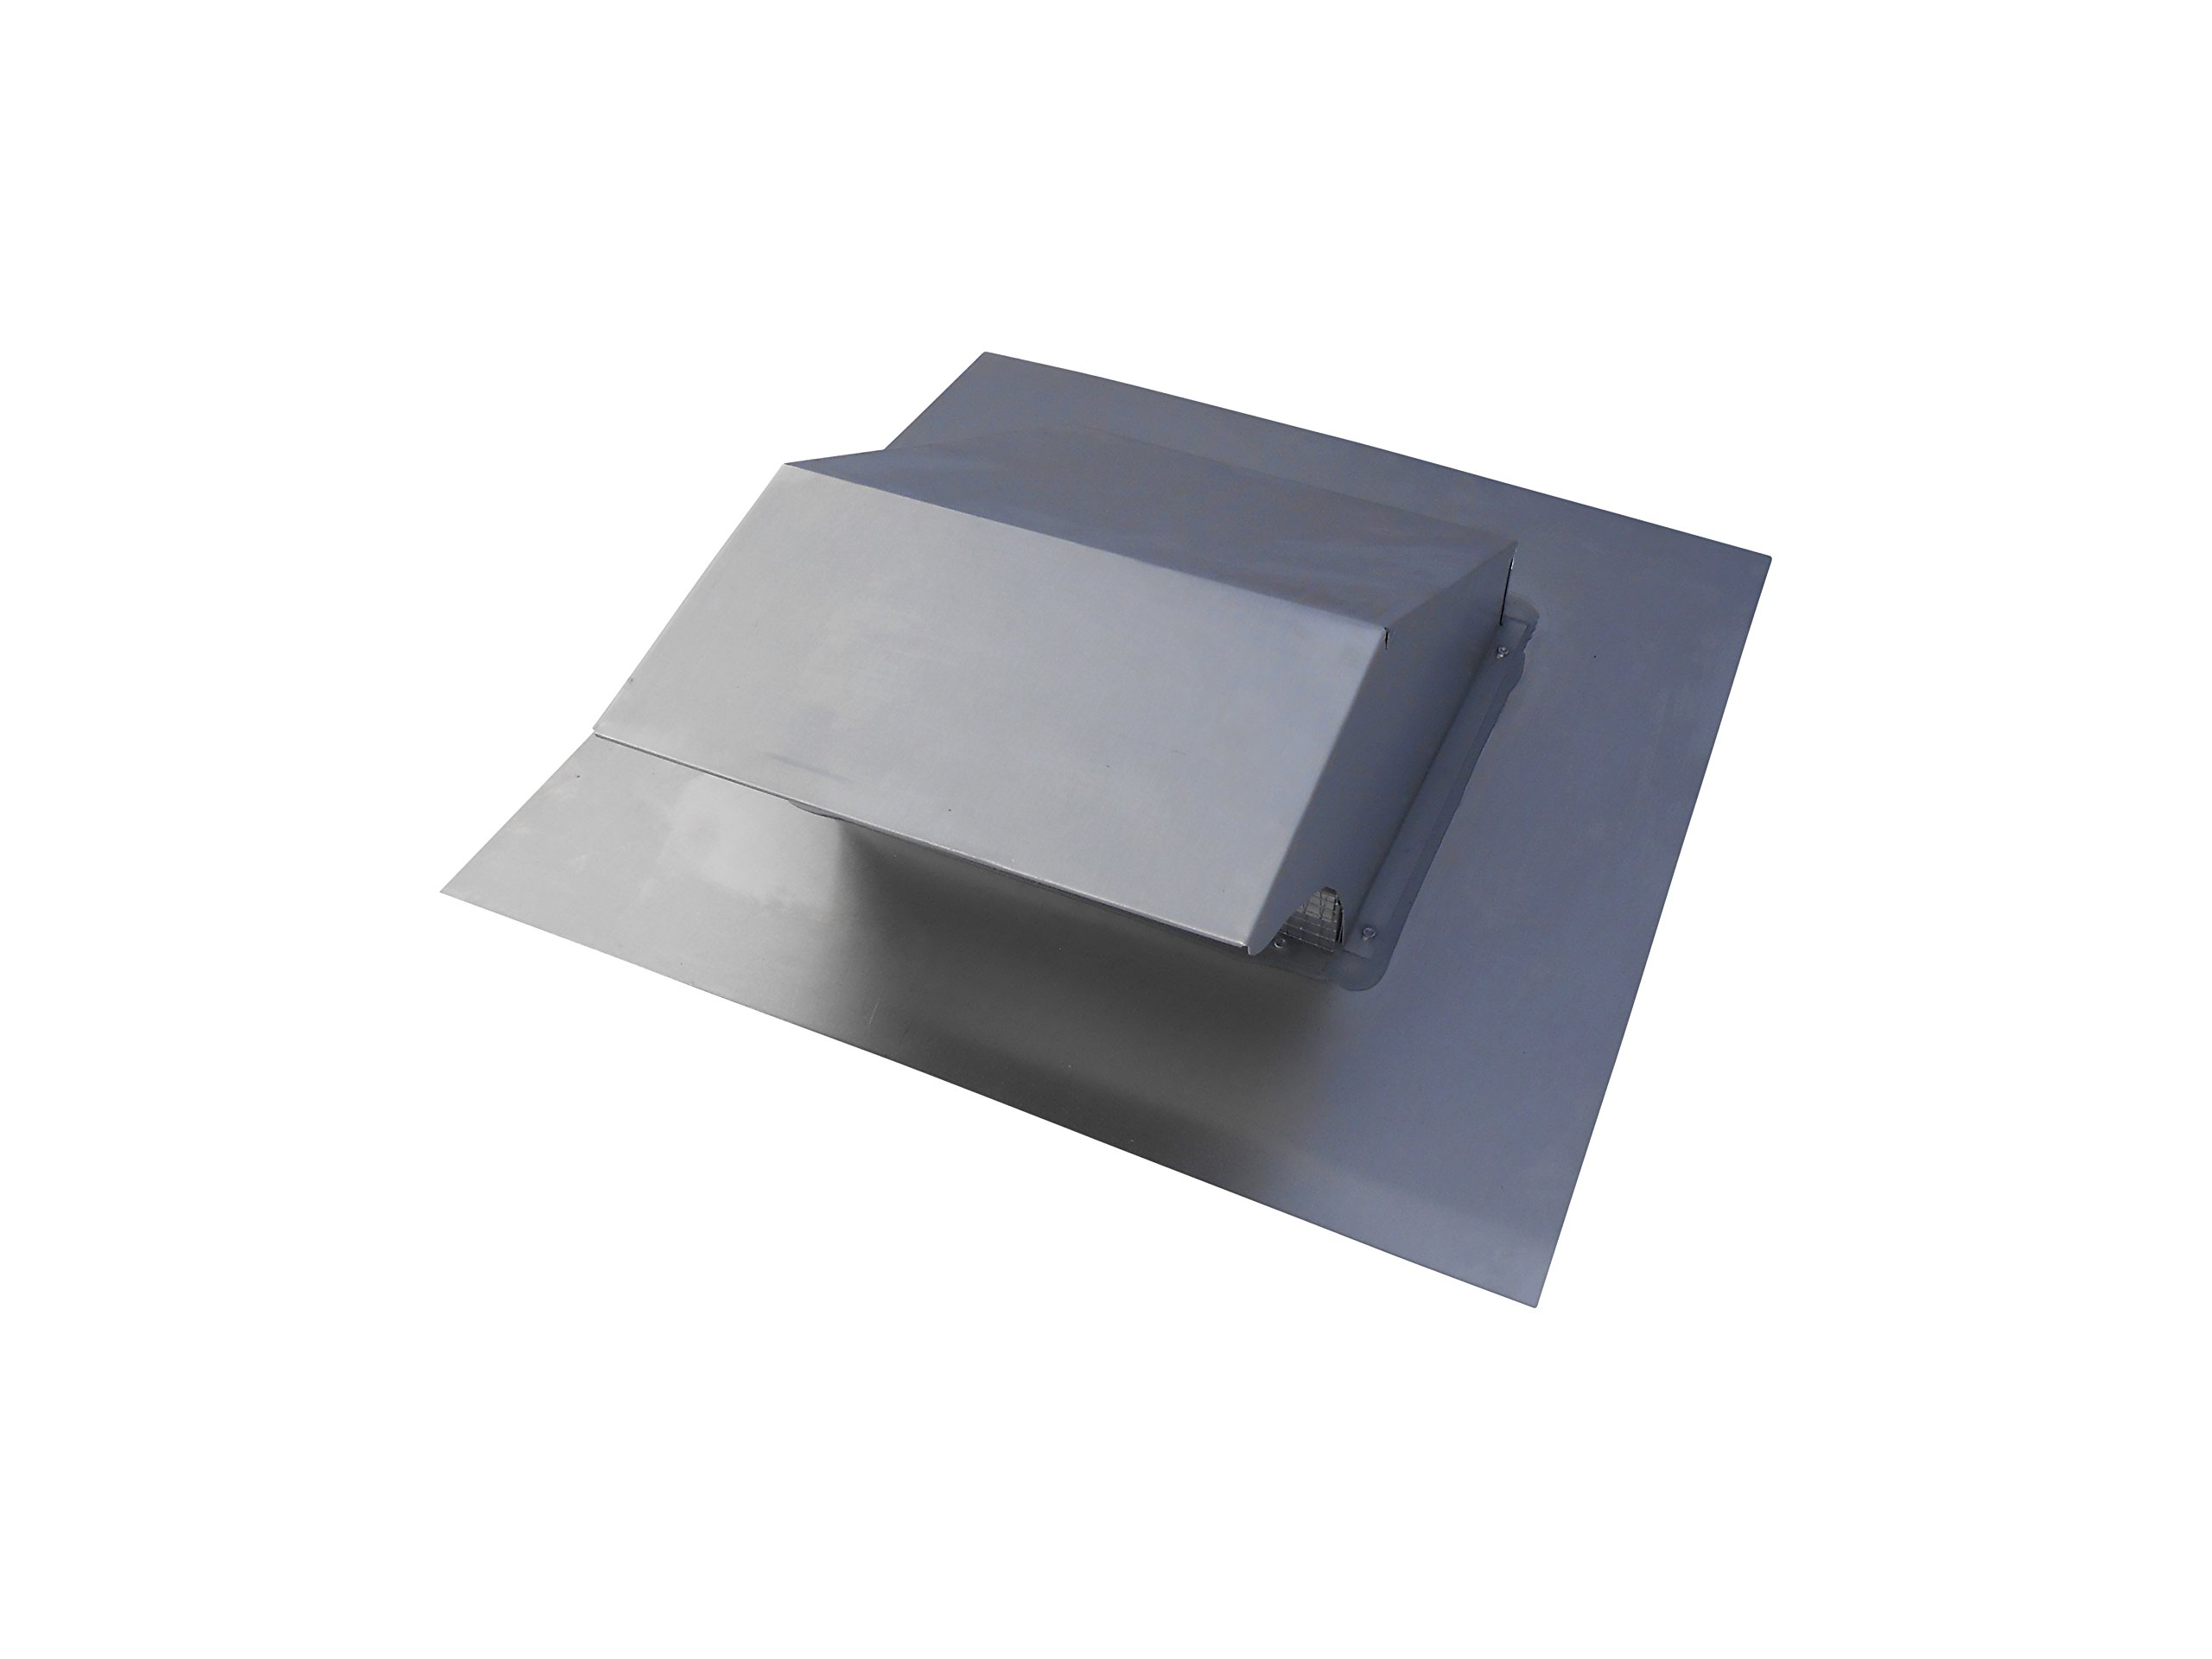 5 Inch Roof Vent Hood Cap Galvanized Damper & Screen - Vent Works by Vent Works (Image #4)